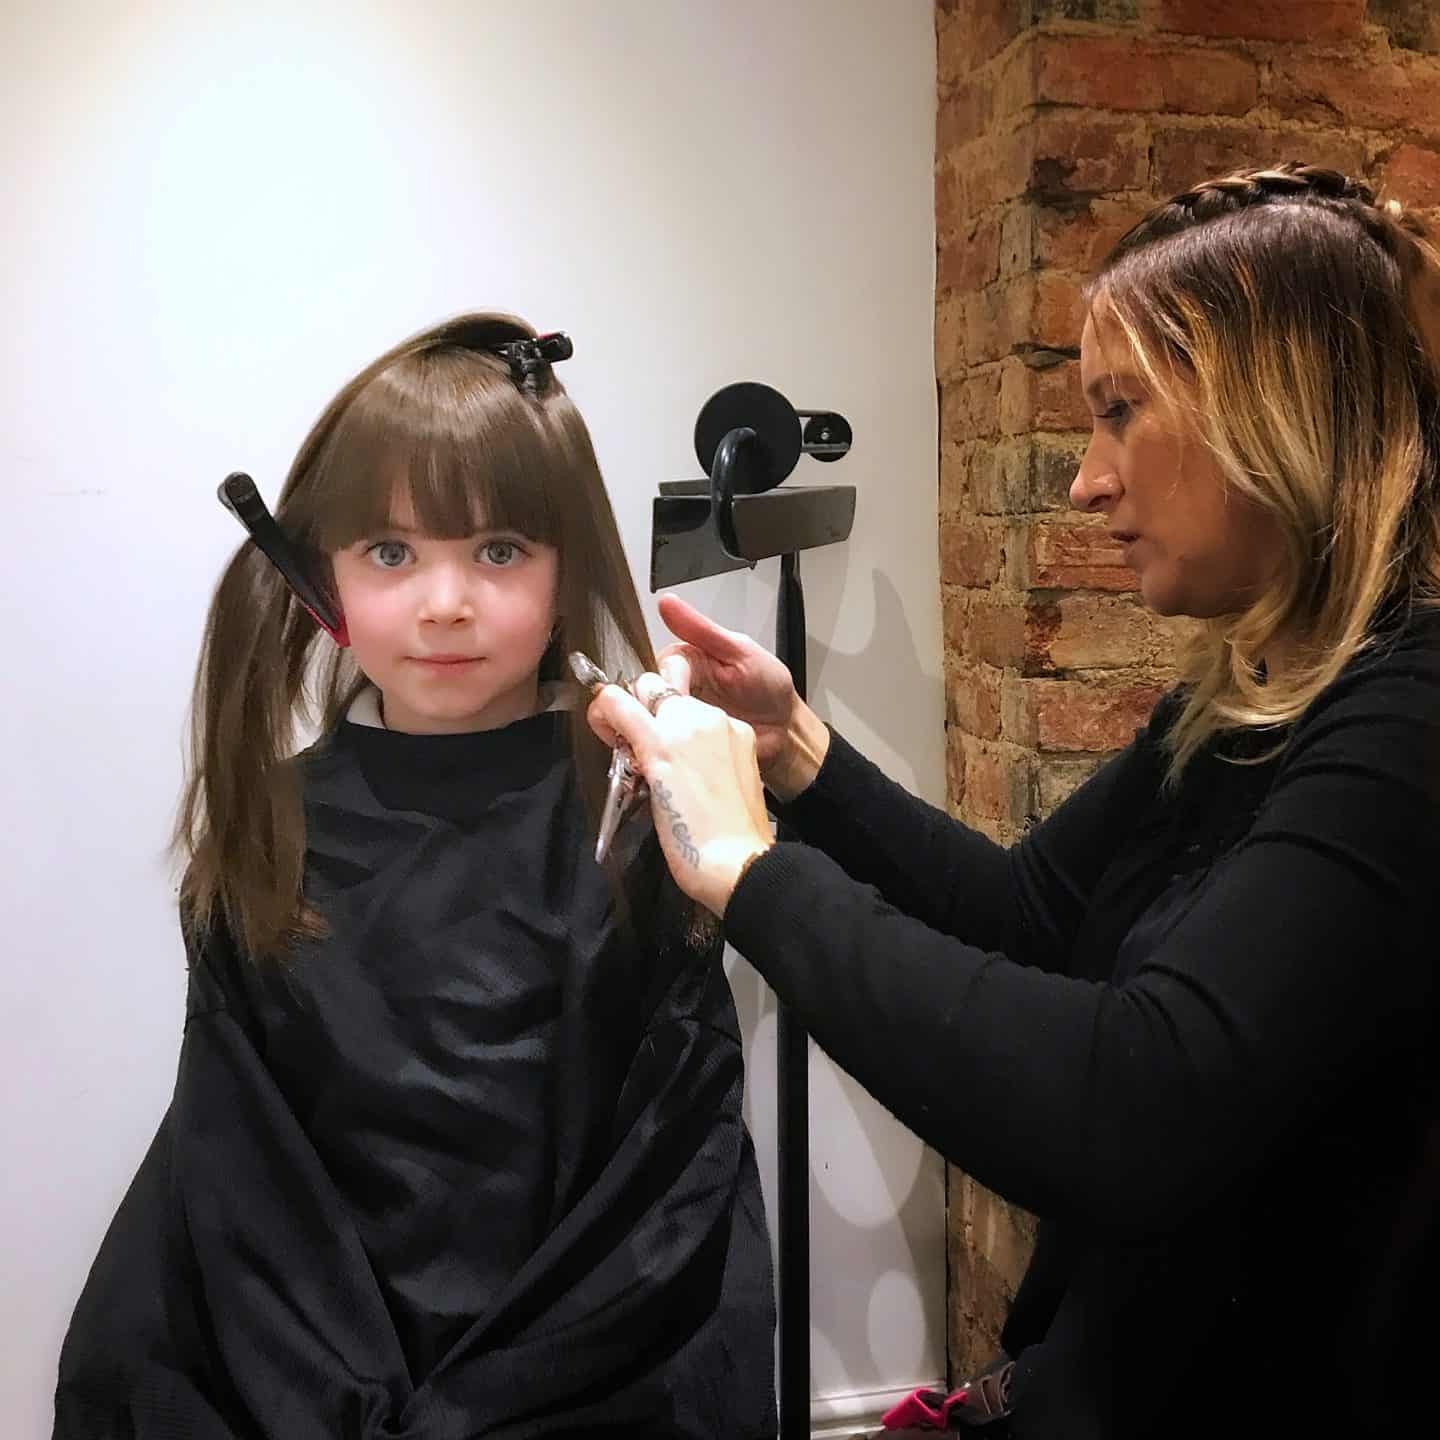 Thea with her new fringe getting her hair cut